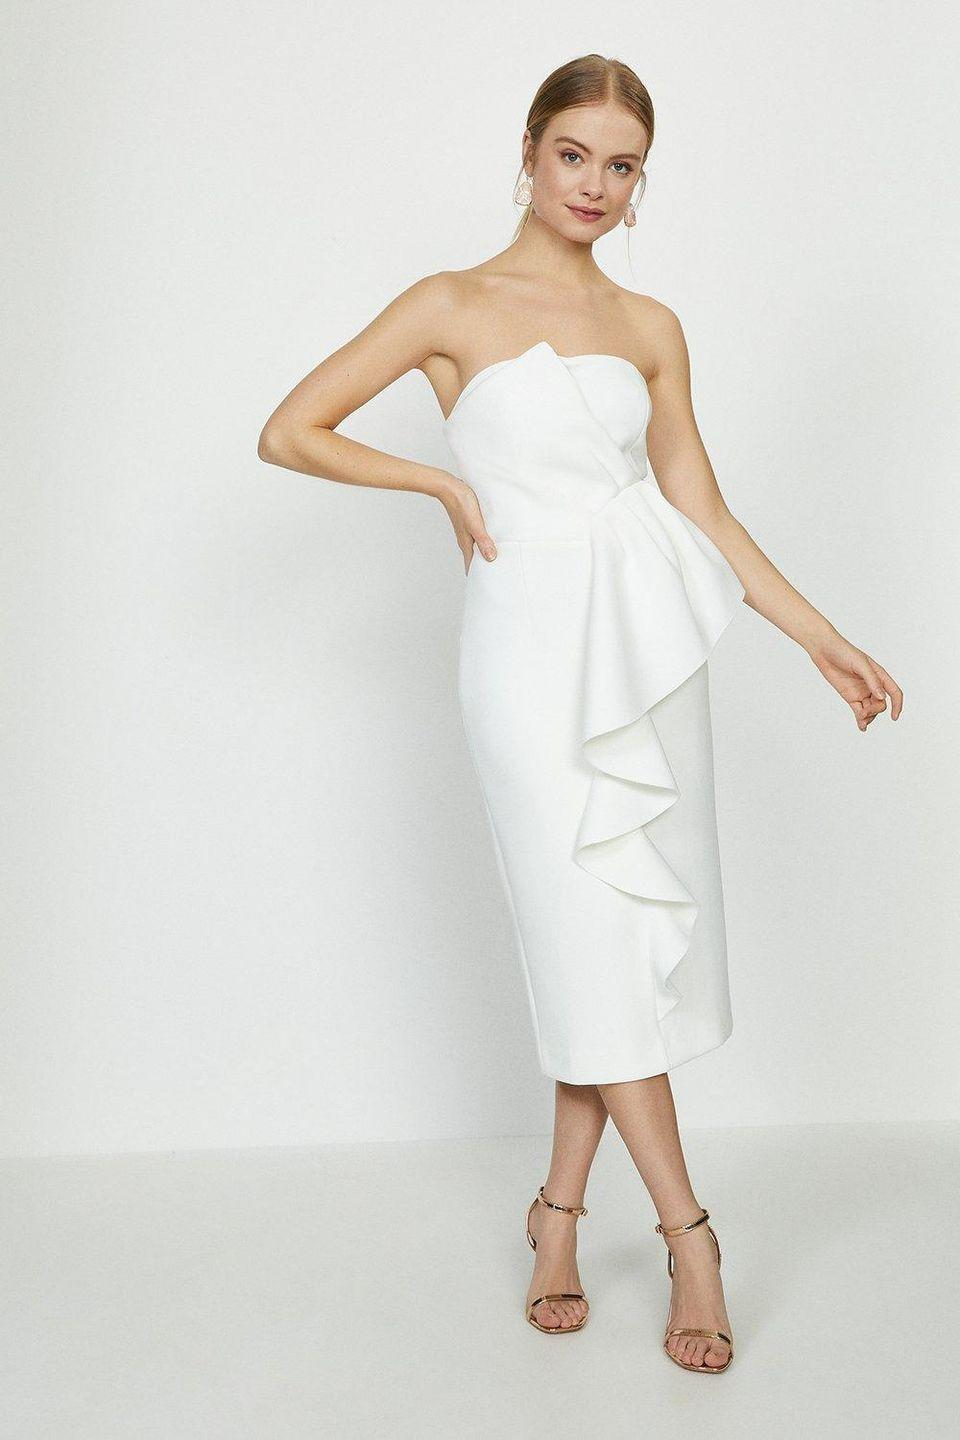 """<p><a class=""""link rapid-noclick-resp"""" href=""""https://go.redirectingat.com?id=127X1599956&url=https%3A%2F%2Fwww.coastfashion.com%2Fruffle-front-bandeau-bridal-dress%2FACC95821.html%3Fcolor%3D133&sref=https%3A%2F%2Fwww.prima.co.uk%2Ffashion-and-beauty%2Ffashion-tips%2Fg34510%2Fwedding-dresses-under-500-pounds%2F"""" rel=""""nofollow noopener"""" target=""""_blank"""" data-ylk=""""slk:SHOP NOW"""">SHOP NOW</a></p><p><br>This midi-style wedding dress is especially elegant with its cascading ruffle front, pencil-shaped skirt and strapless neckline.</p><p>Ruffle Front Bandeau Bridal Dress, £74.25, <a href=""""https://www.coastfashion.com/ruffle-front-bandeau-bridal-dress/ACC95821.html?color=133"""" rel=""""nofollow noopener"""" target=""""_blank"""" data-ylk=""""slk:Coast"""" class=""""link rapid-noclick-resp"""">Coast</a> </p>"""